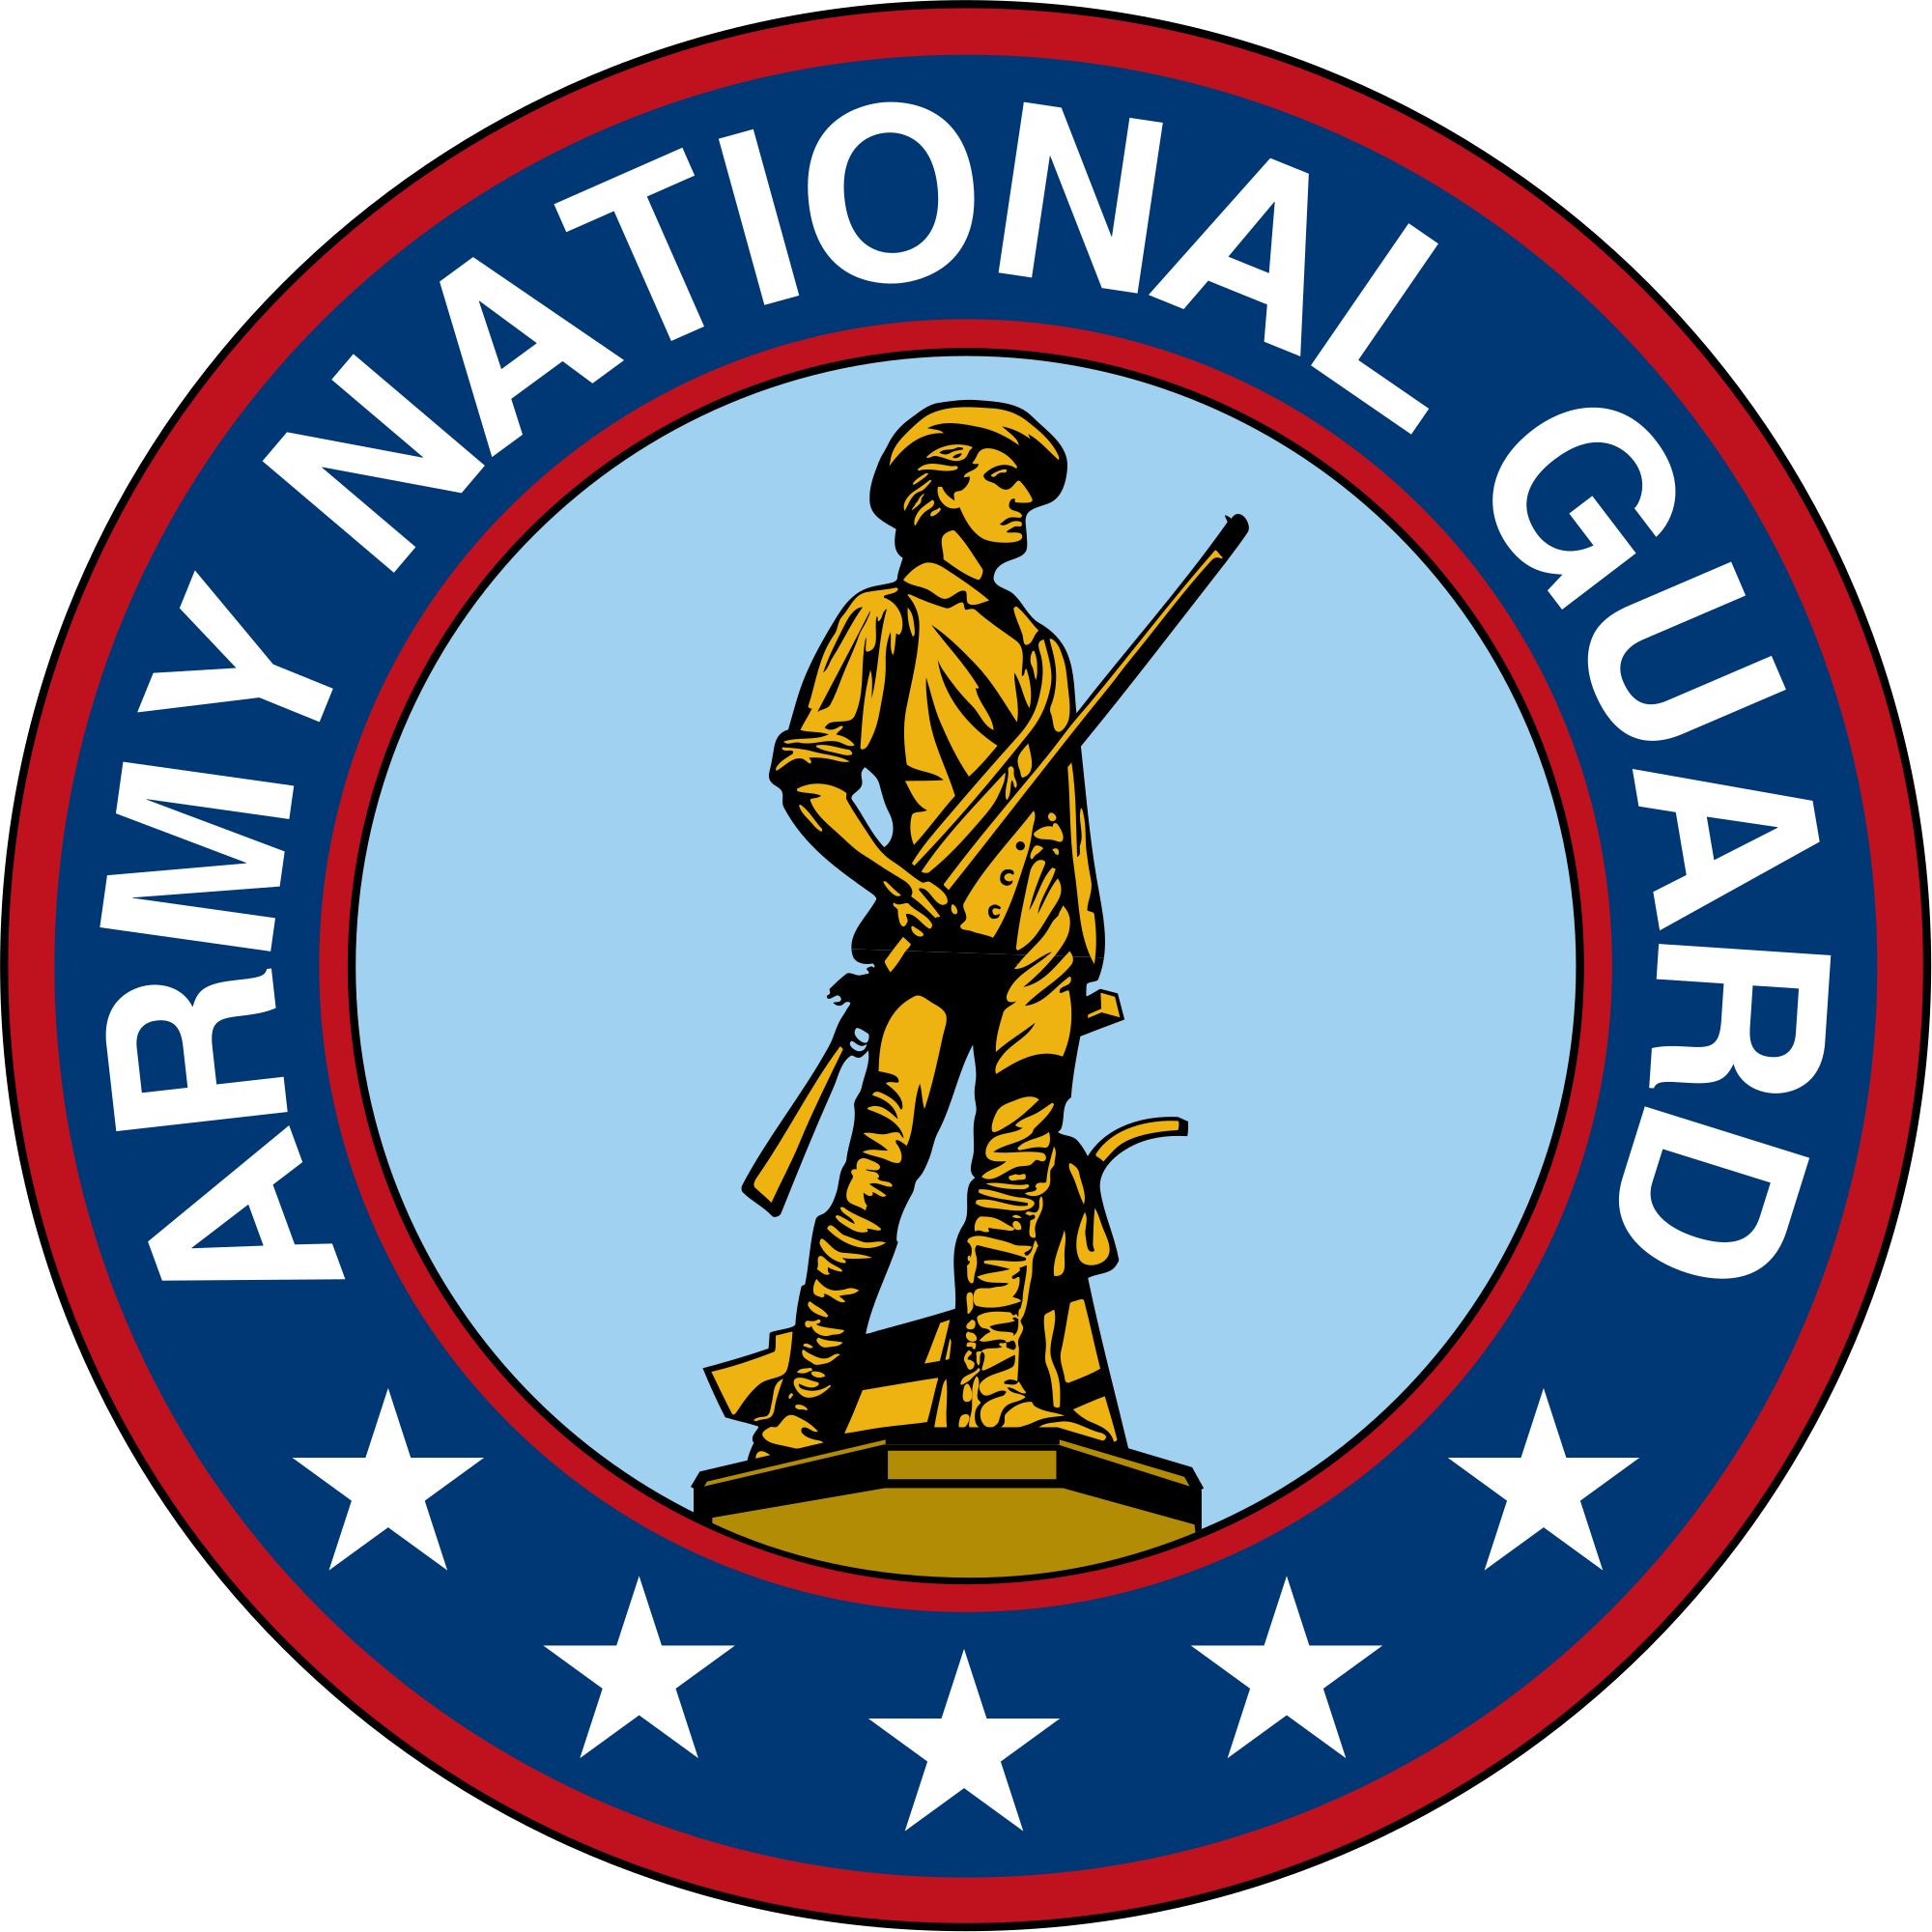 National guard of the. Fighting clipart altercation